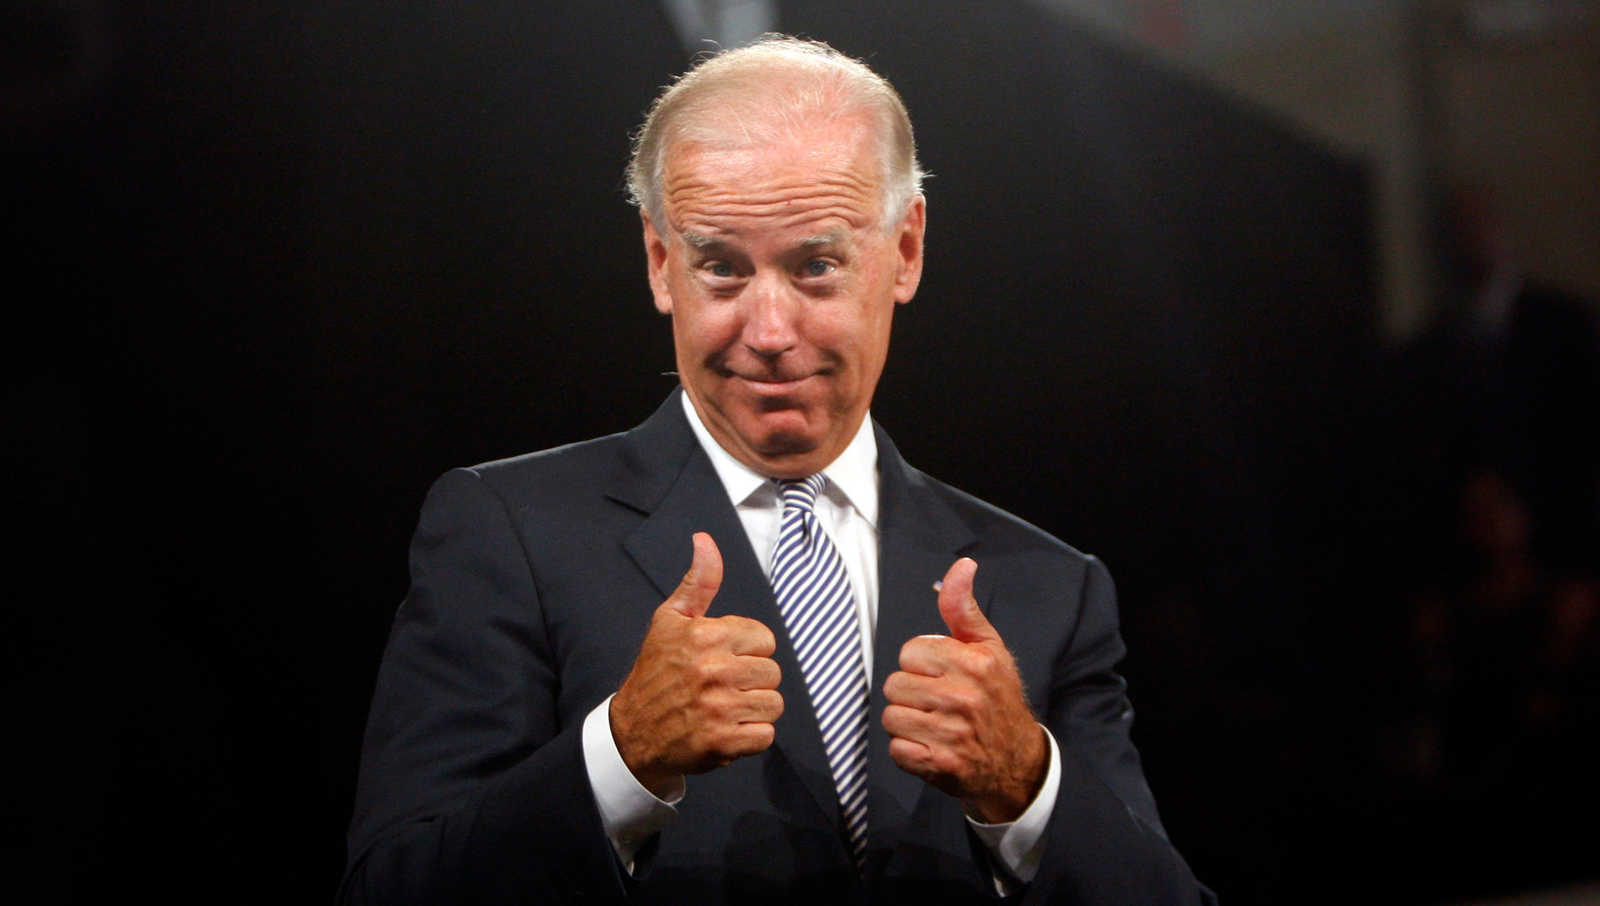 Biden Implores Obama To 'Rub One Out' Before Debate